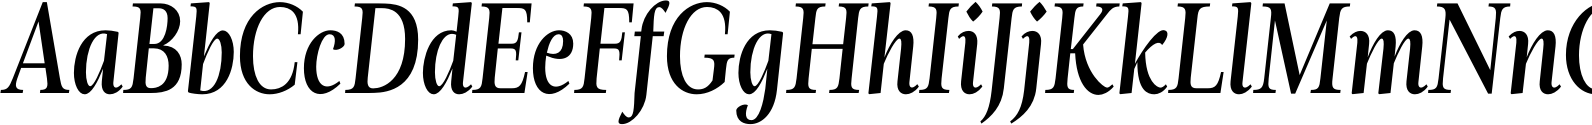 Magneta Condensed Medium Italic Font